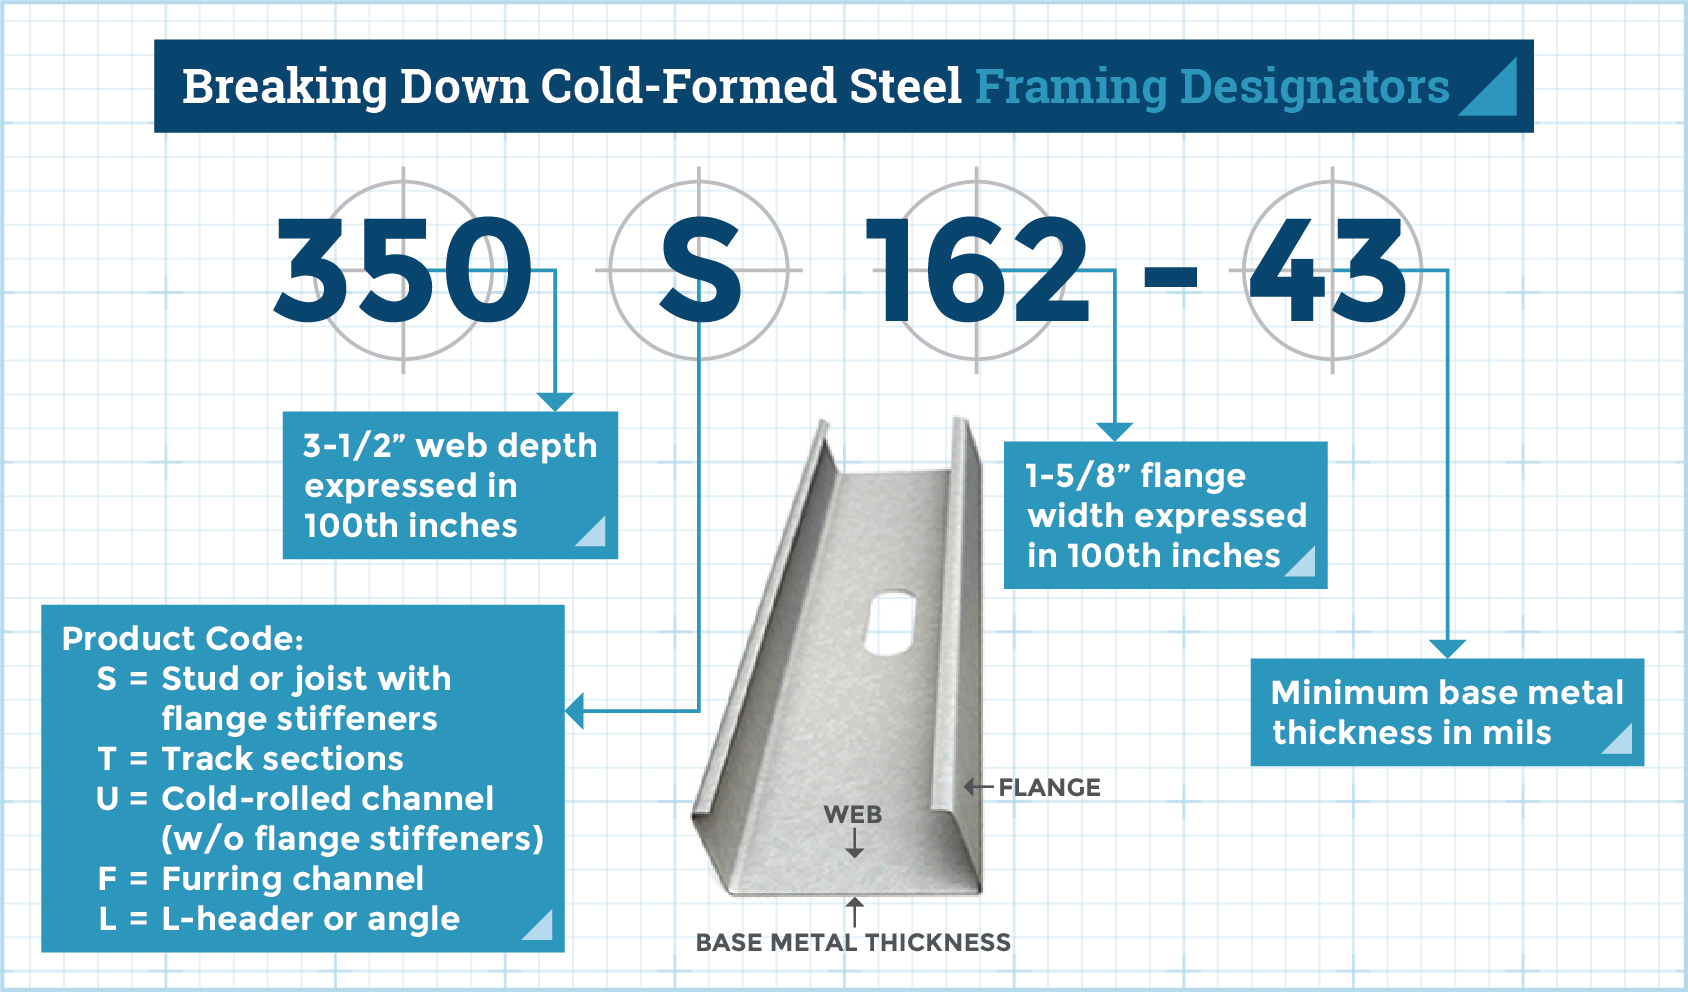 How to Order Cold-Formed Steel Framing